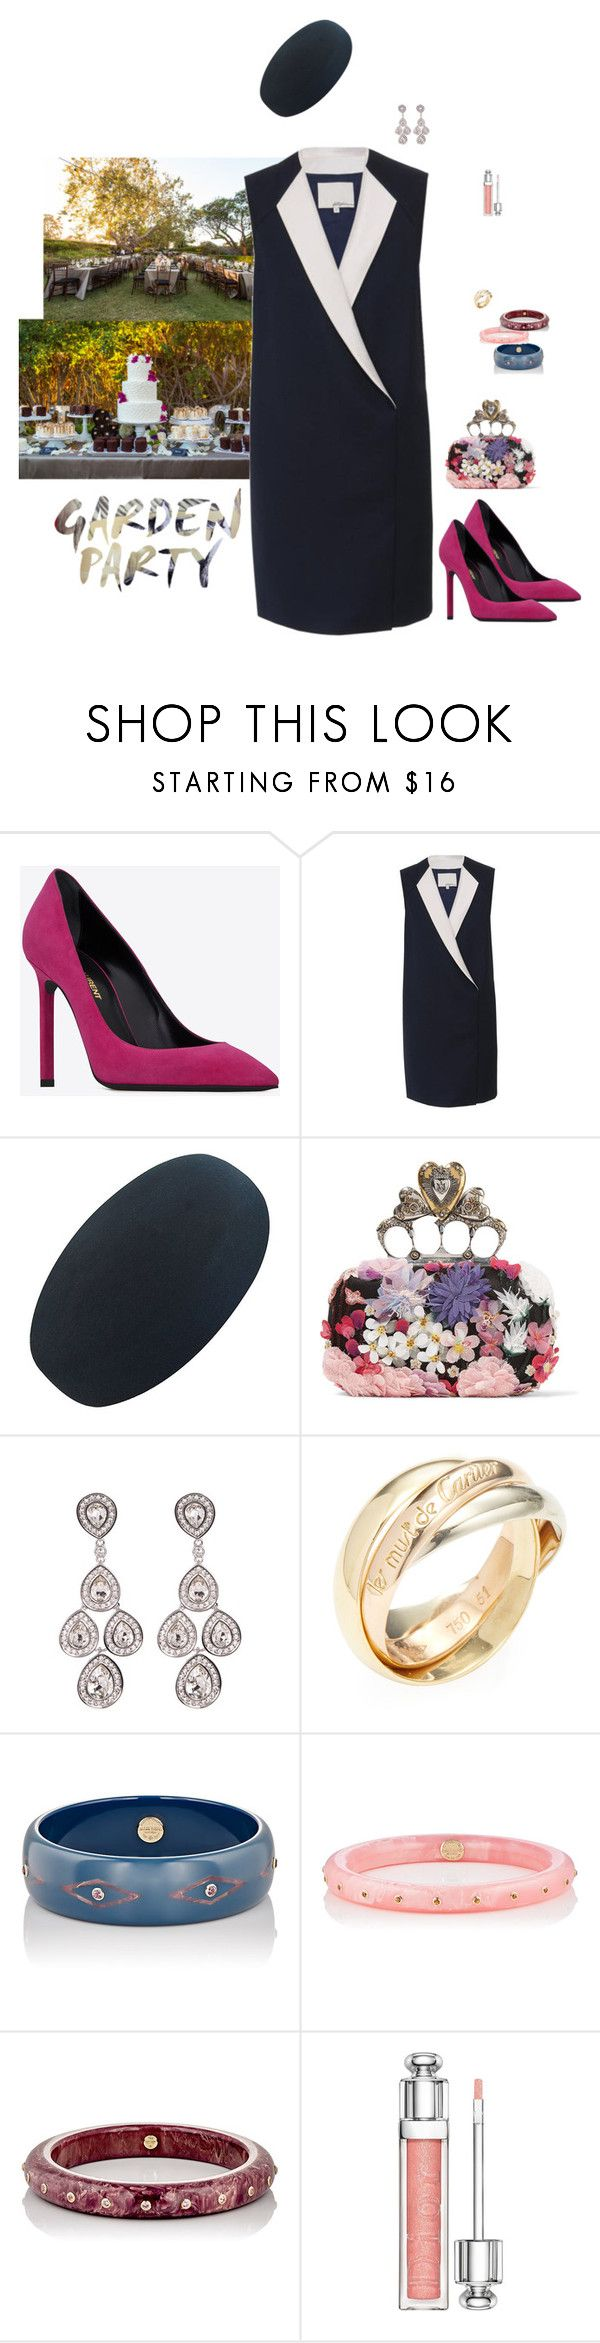 """""""Ready for the Garden party."""" by srtagraham ❤ liked on Polyvore featuring 3.1 Phillip Lim, Alexander McQueen, Swarovski, Cartier, Mark Davis and Christian Dior"""